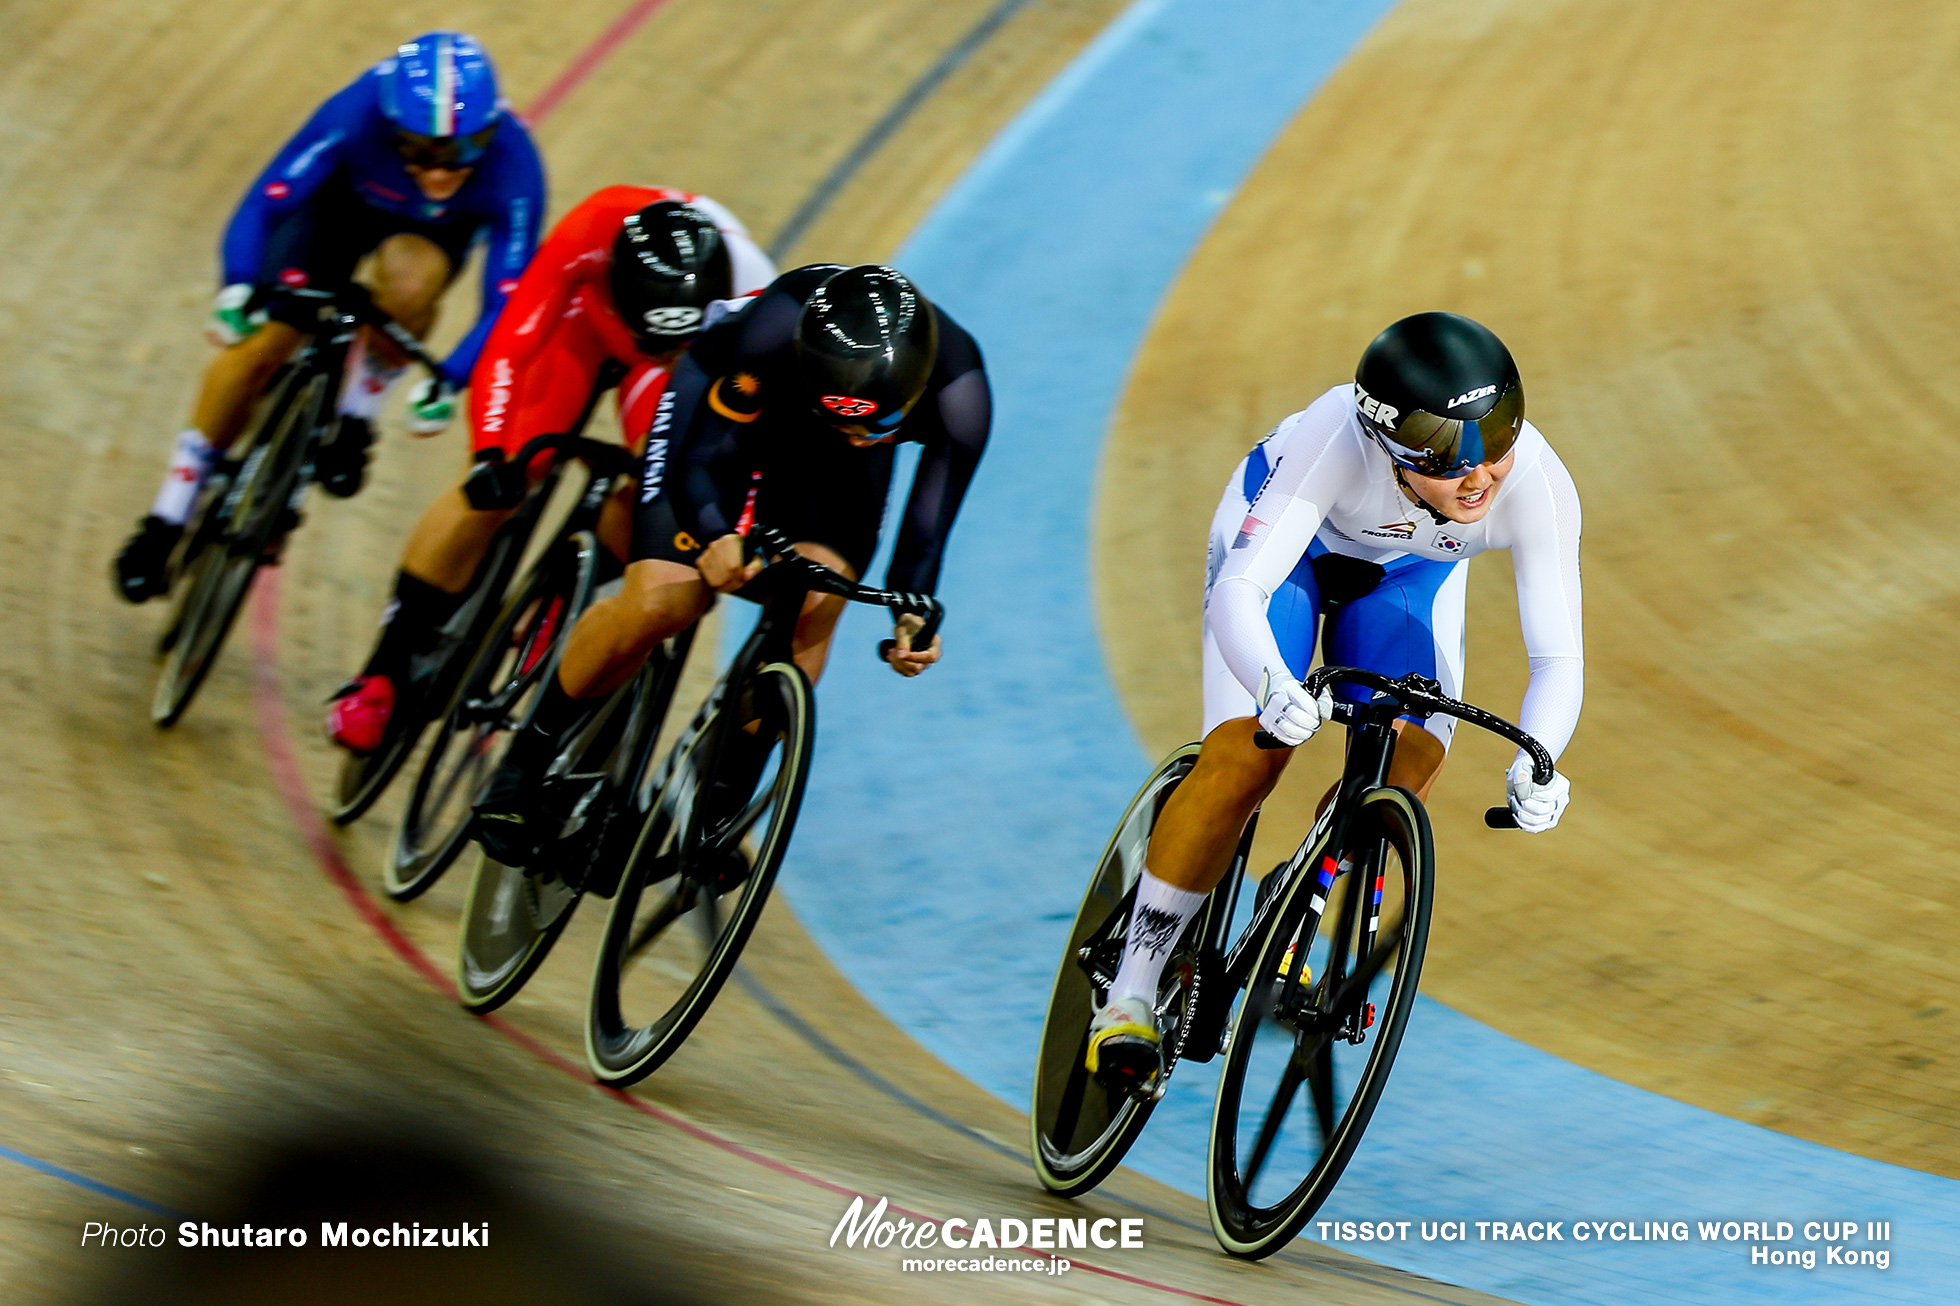 2nd Round / Women's Keirin / TISSOT UCI TRACK CYCLING WORLD CUP III, Hong Kong